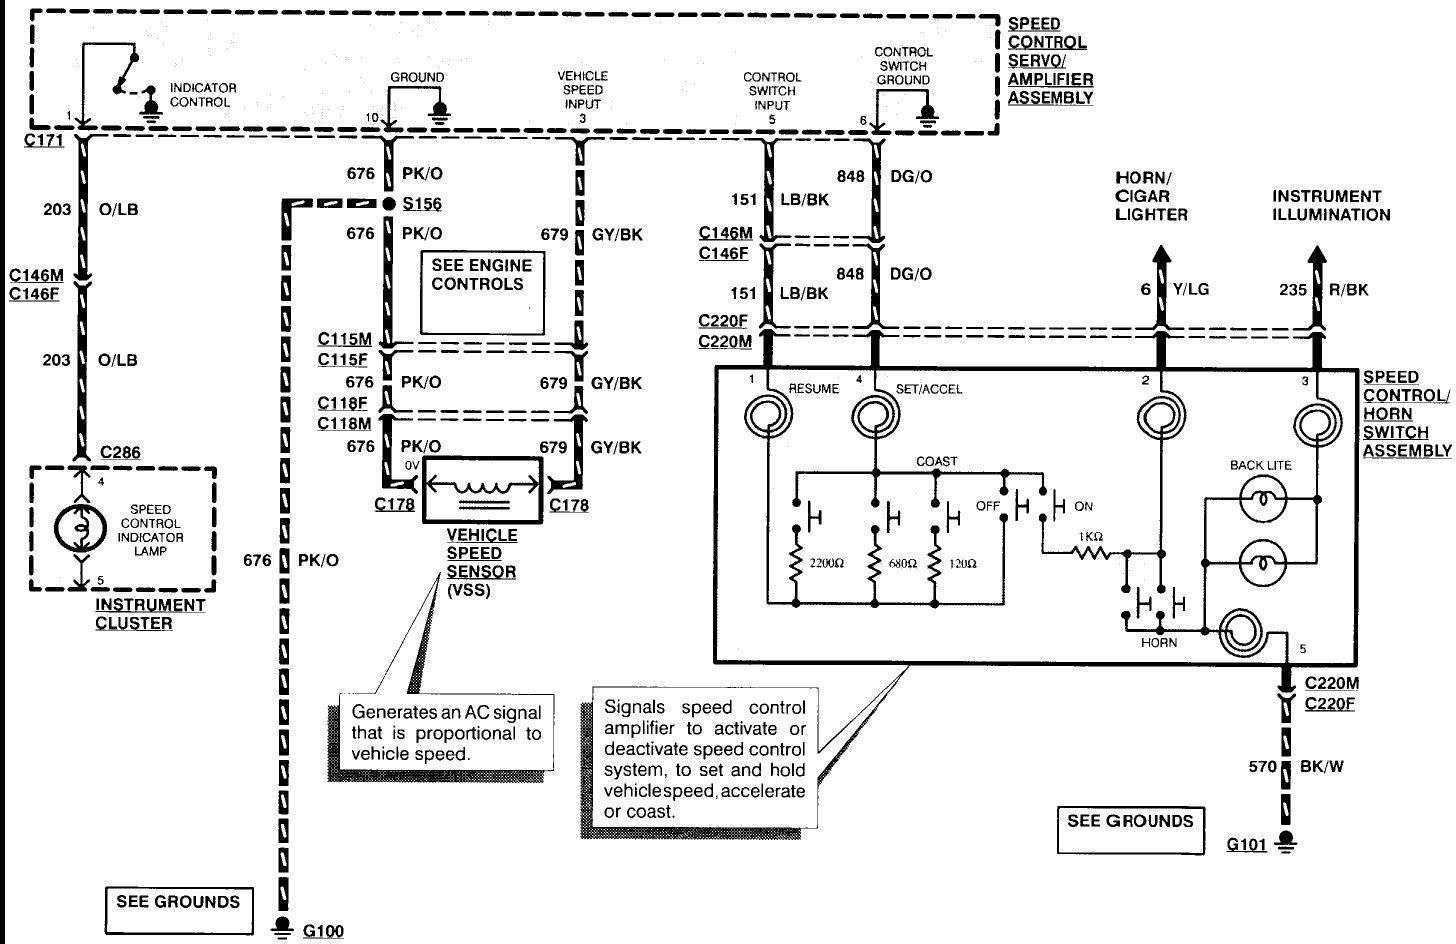 Cruise Control Wiring Diagram 2003 Ford Mustang - wiring diagram  conductor-ocean - conductor-ocean.technoservicestudio.it | Citroen Cruise Control Diagram |  | technoservicestudio.it